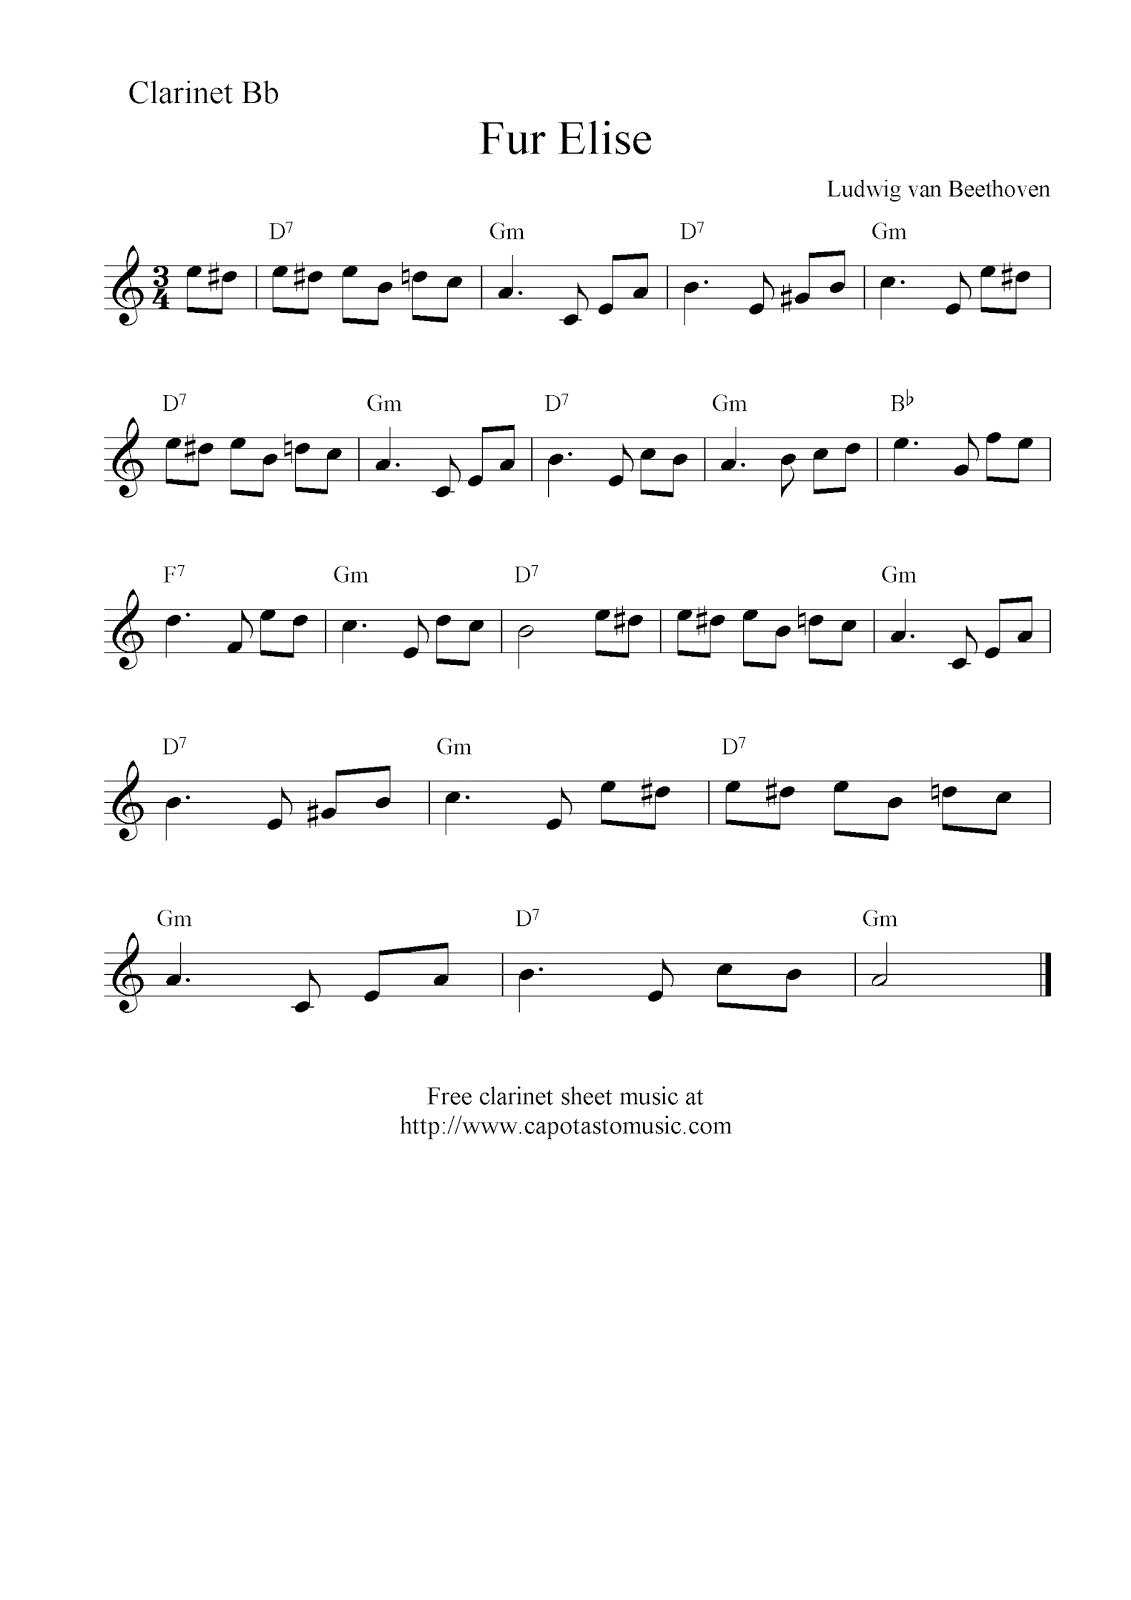 graphic relating to Free Printable Clarinet Sheet Music titled Fur Elise, absolutely free clarinet sheet songs notes